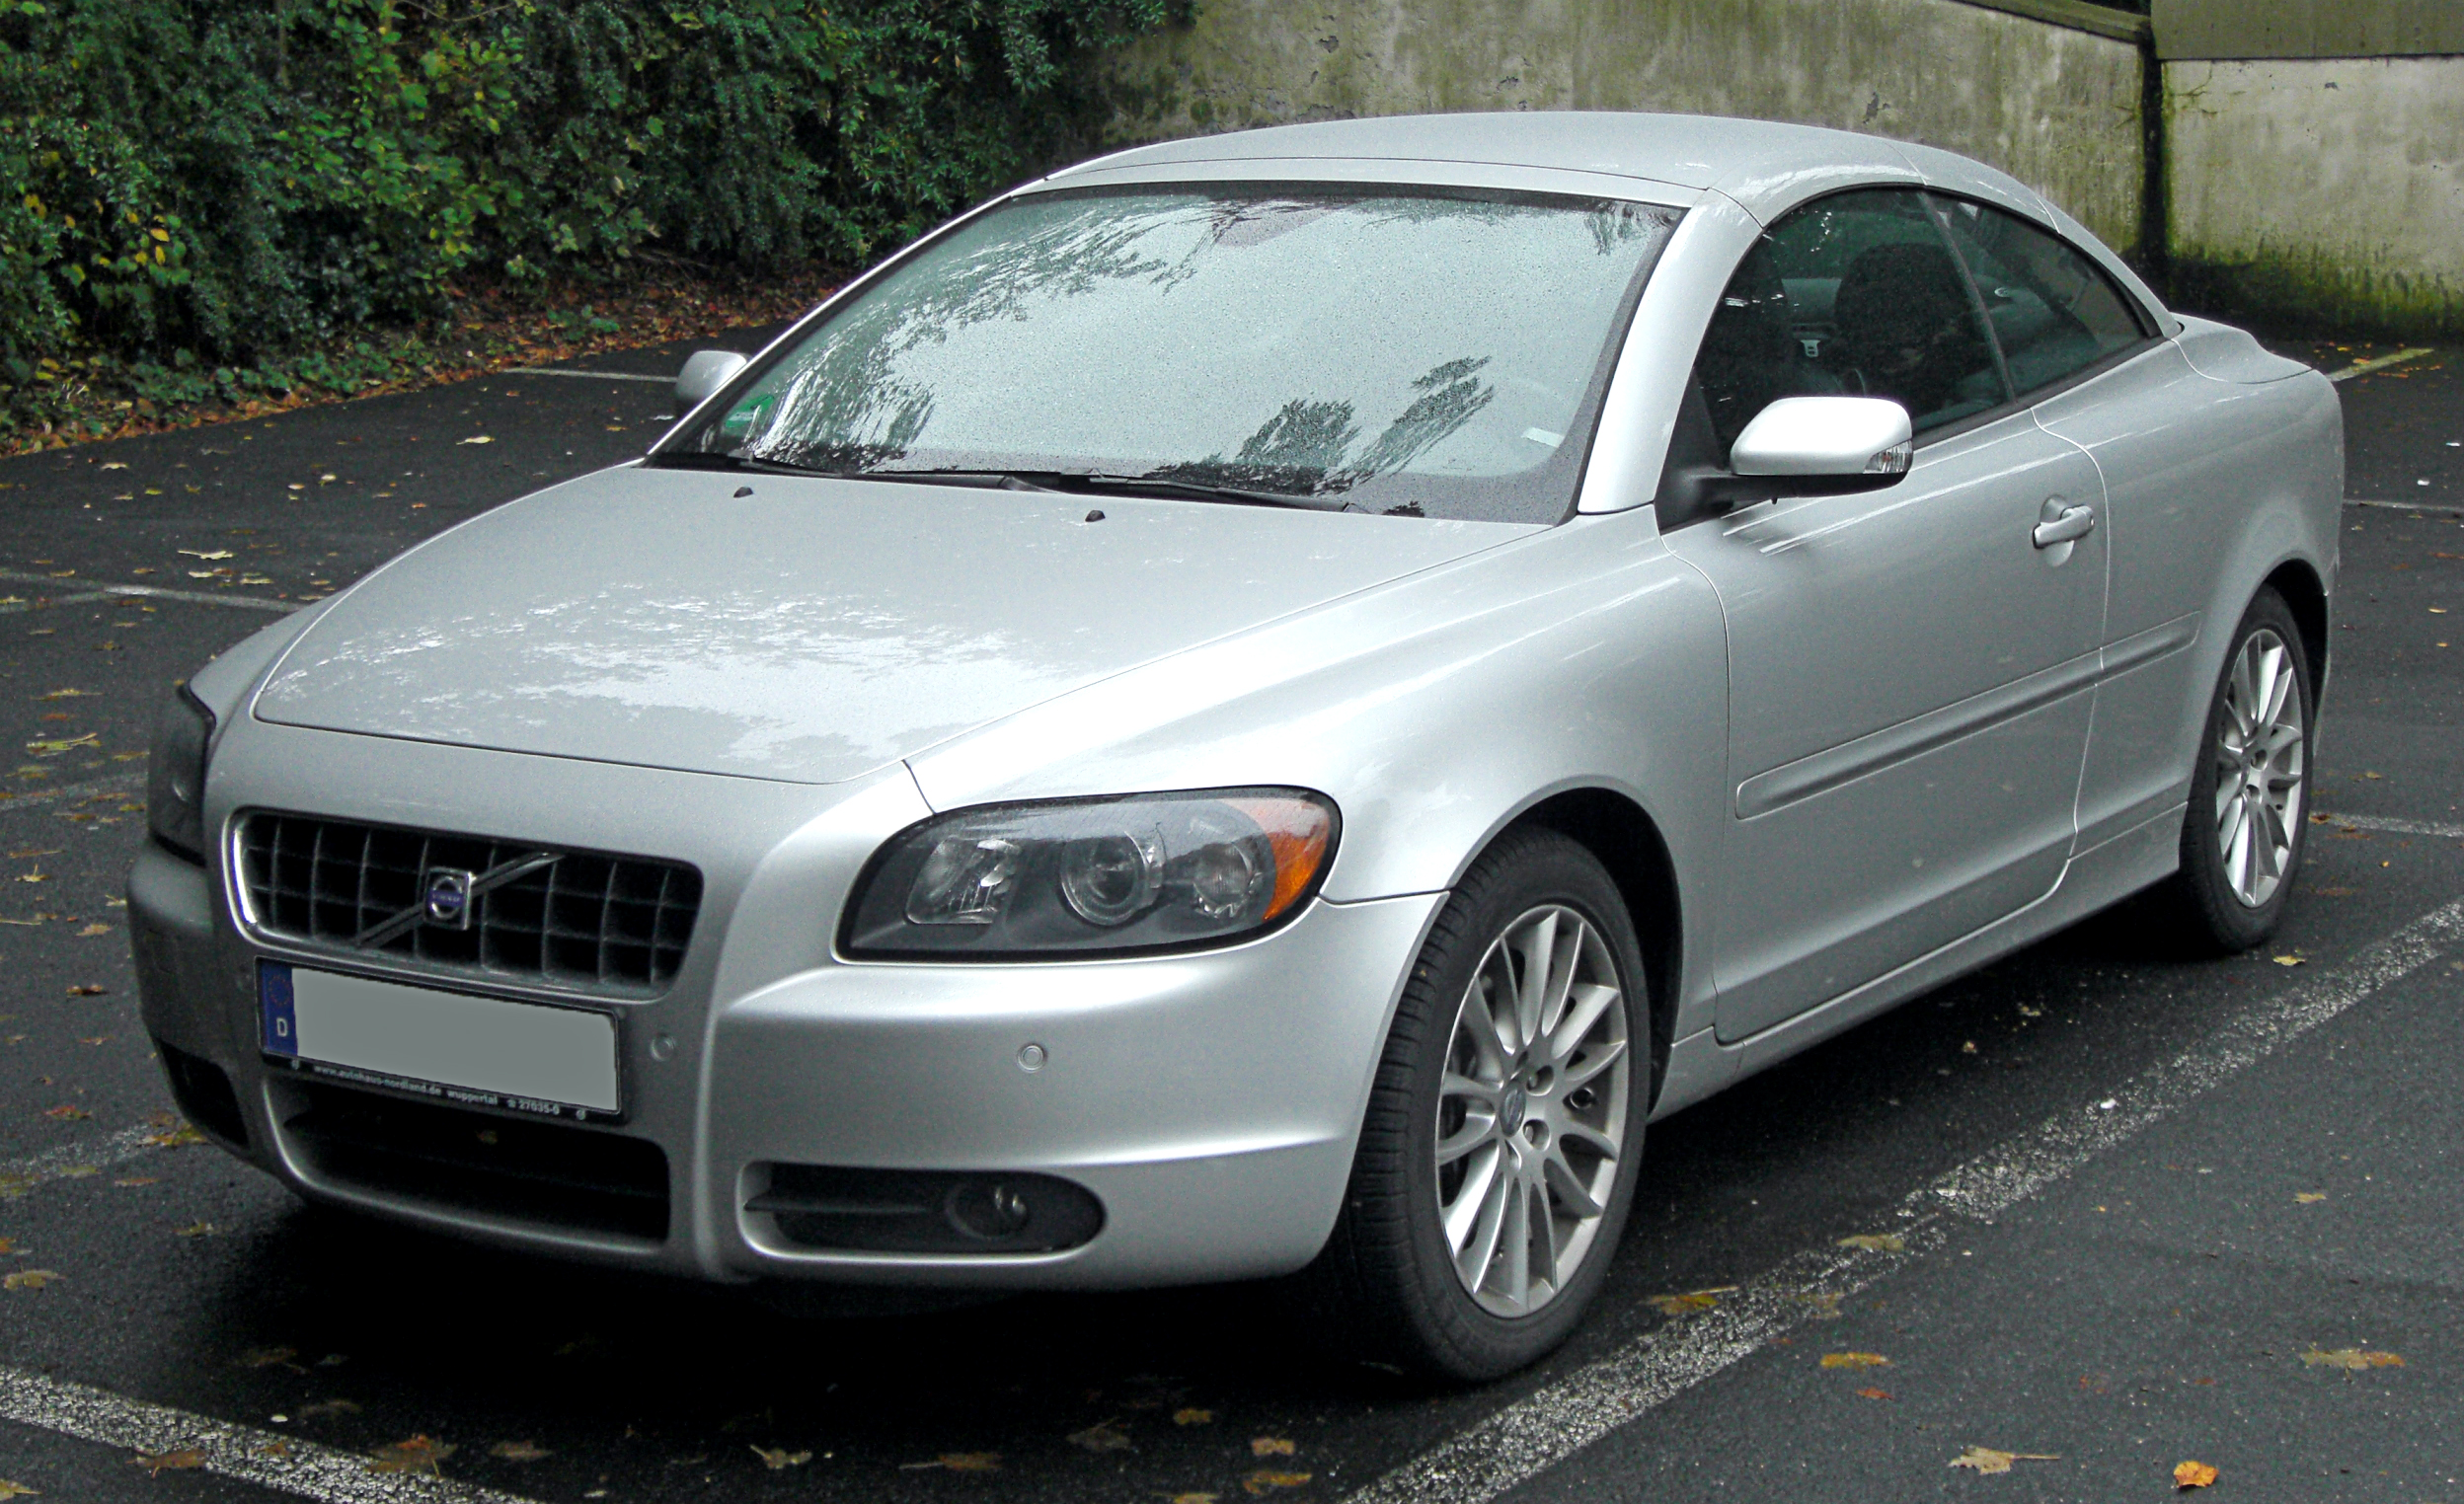 photos for sale com articles informations makes bestcarmag convertible volvo front